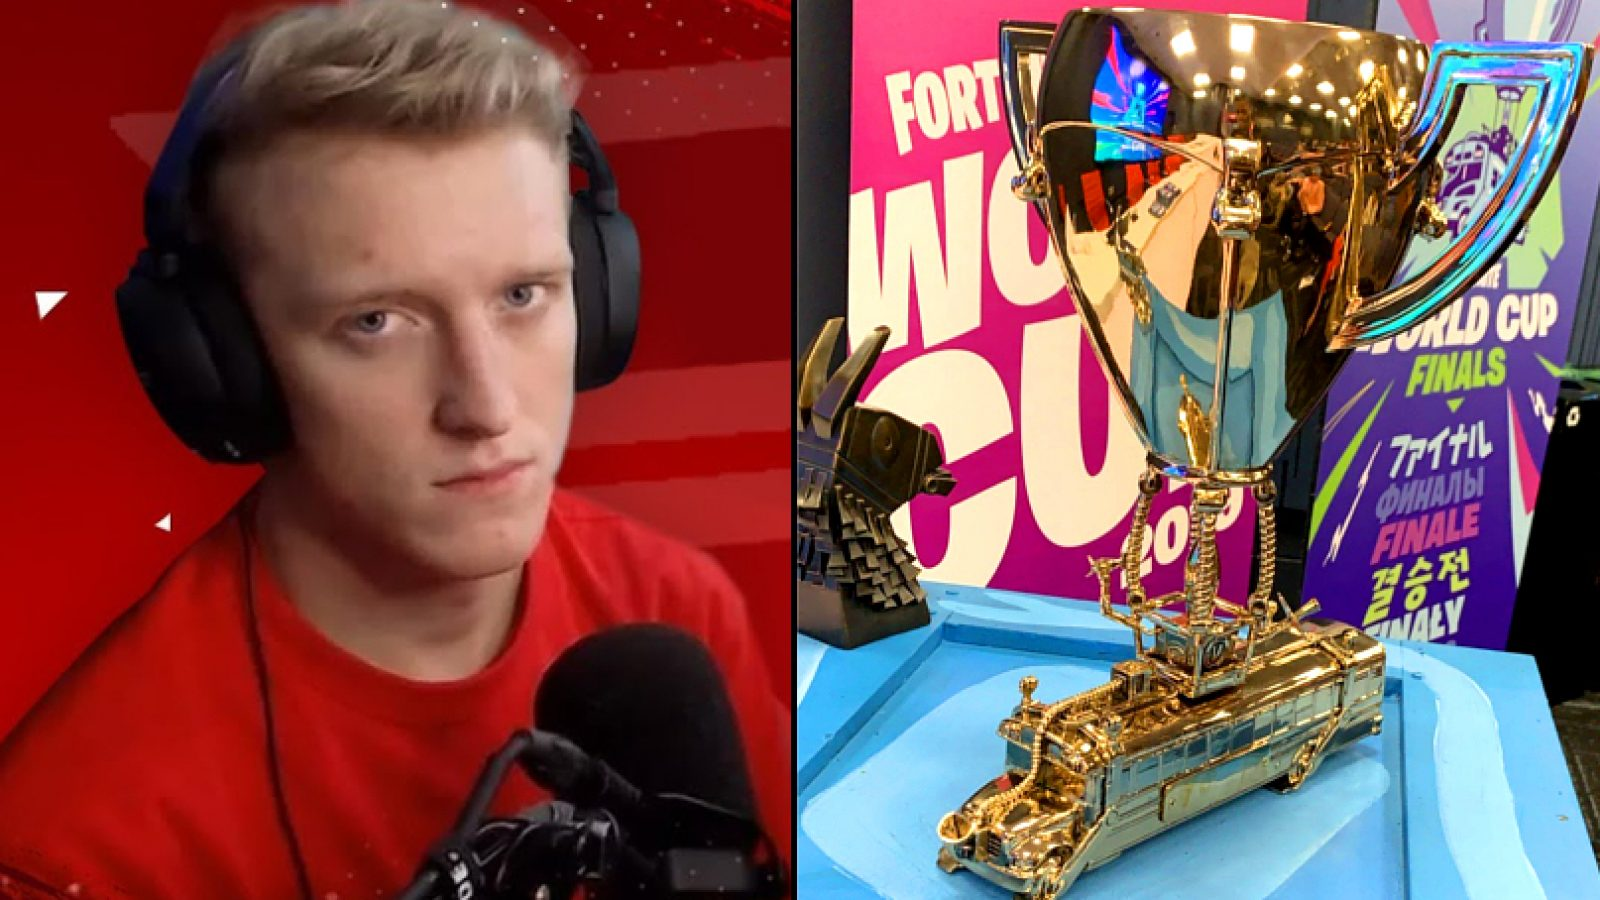 Tfue struggles mightily at Fortnite World Cup despite the hype